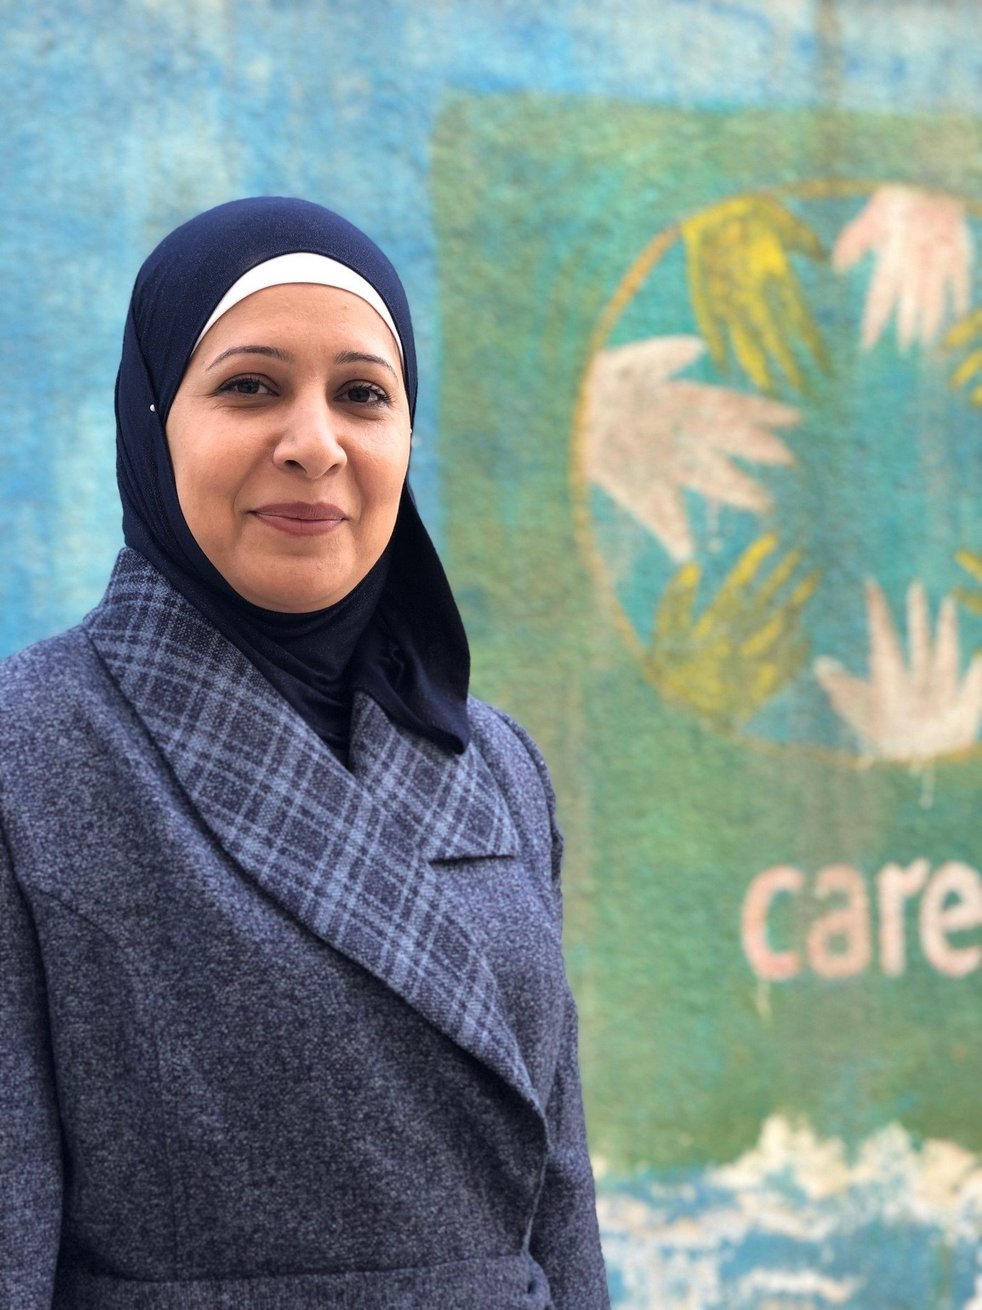 """<p style=""""margin-left:0in;margin-right:0in""""><span style=""""font-size:12pt"""">Emiline, 39, is a married Syrian mother of three. When she came from Syria to Jordan in 2012 with her husband and children, she found herself trapped inside four walls.&nbsp; She was too afraid to leave her home, and wouldn&rsquo;t let her children leave either. Her husband couldn&rsquo;t find work and they had no source of income. This turned their household into a place where no one felt happy, or even safe. &ldquo;I became a different person; I yelled at my kids, I stopped talking to my husband, and I locked myself in a room most of the time. The walls were closing in on me,&rdquo; explains Emiline.&nbsp;</span><span style=""""font-size:12pt"""">&ldquo;The first session I ever attended was at CARE, and it was about <em>Women&rsquo;s Rights</em>. I remember going back home and telling my husband to take us back to Syria if this was how we were going to continue living. I have rights, and I want to be able to live like everybody else. The next session I attended was about <em>Child Abuse</em>. I was heartbroken to know that my attitude and feelings were directly affecting my children.&rdquo;&nbsp;</span><span style=""""font-size:12pt"""">Emiline did not stop working to improve her life. Eventually she became one of the leaders at CARE&rsquo;s Zarqa Women Leadership Council. &ldquo;I now stand and talk to other women from a hurtful experience. I tell them that I was exactly where they are now, and show them that I&rsquo;m a live example of how things improve when you are determined to be better. My husband and children are so proud of me. I&rsquo;m proud of myself.&rdquo; </span></p>"""